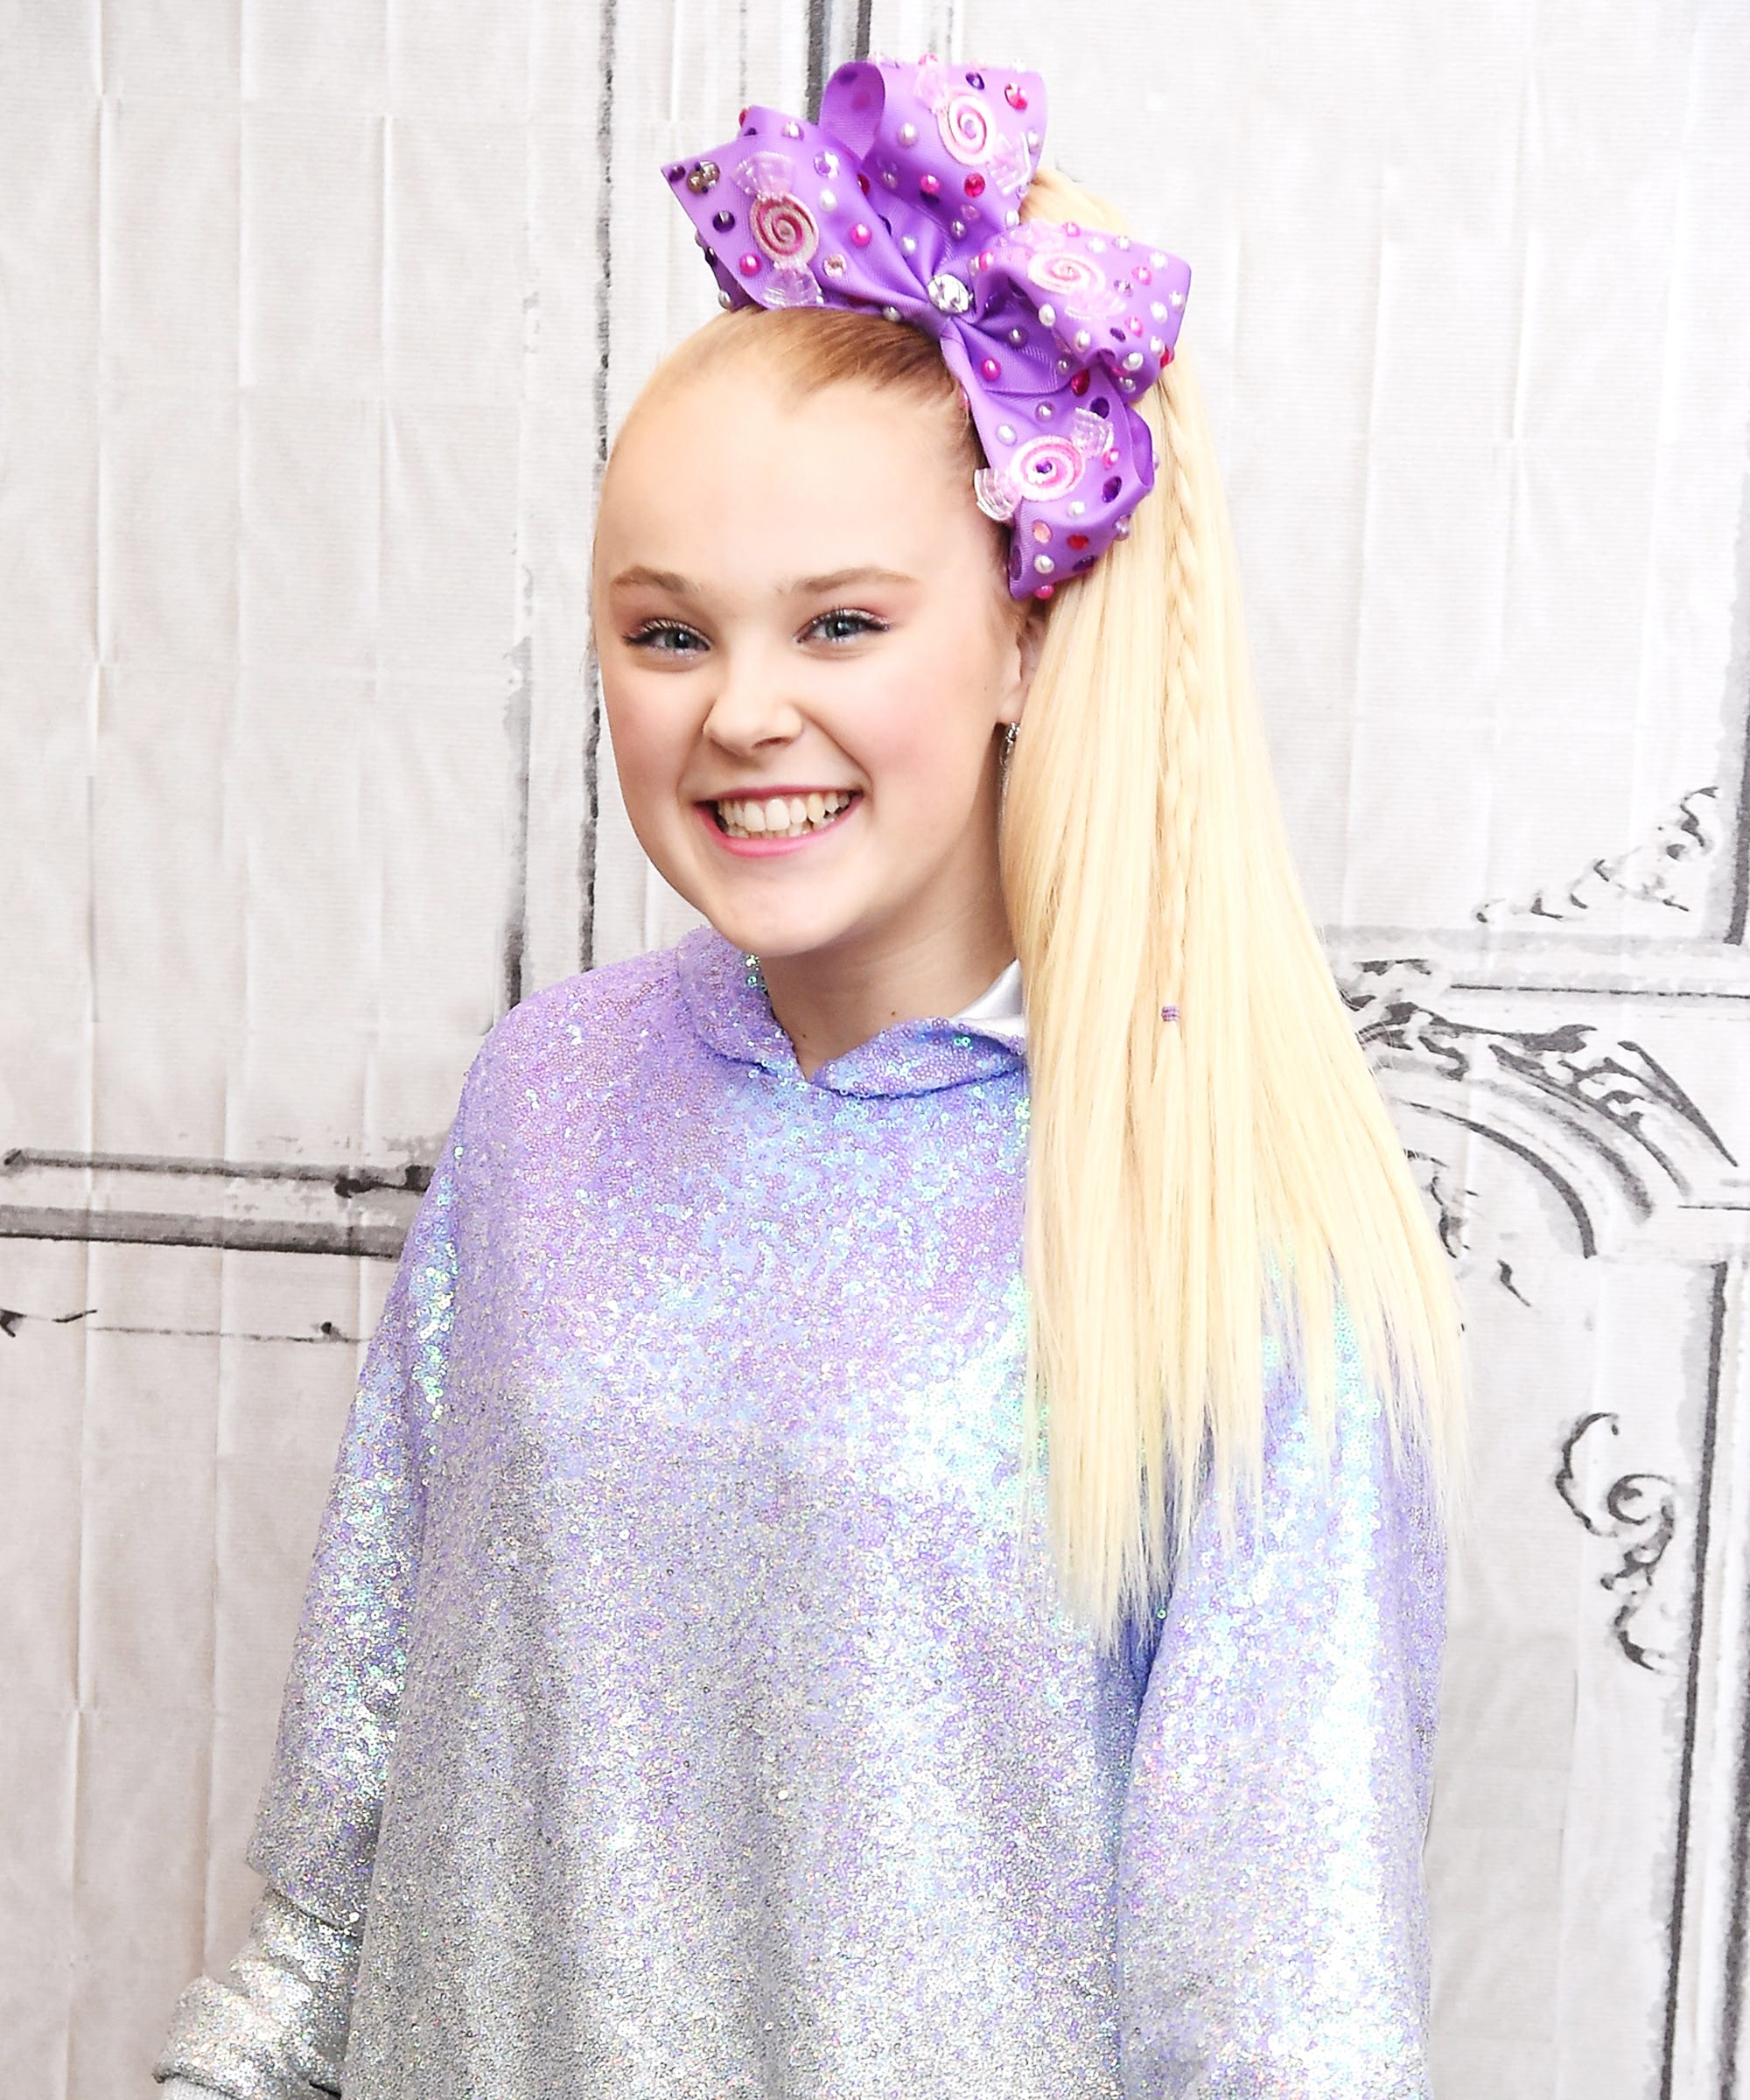 JoJo Siwa Speaks Out After Makeup Recall For Asbestos